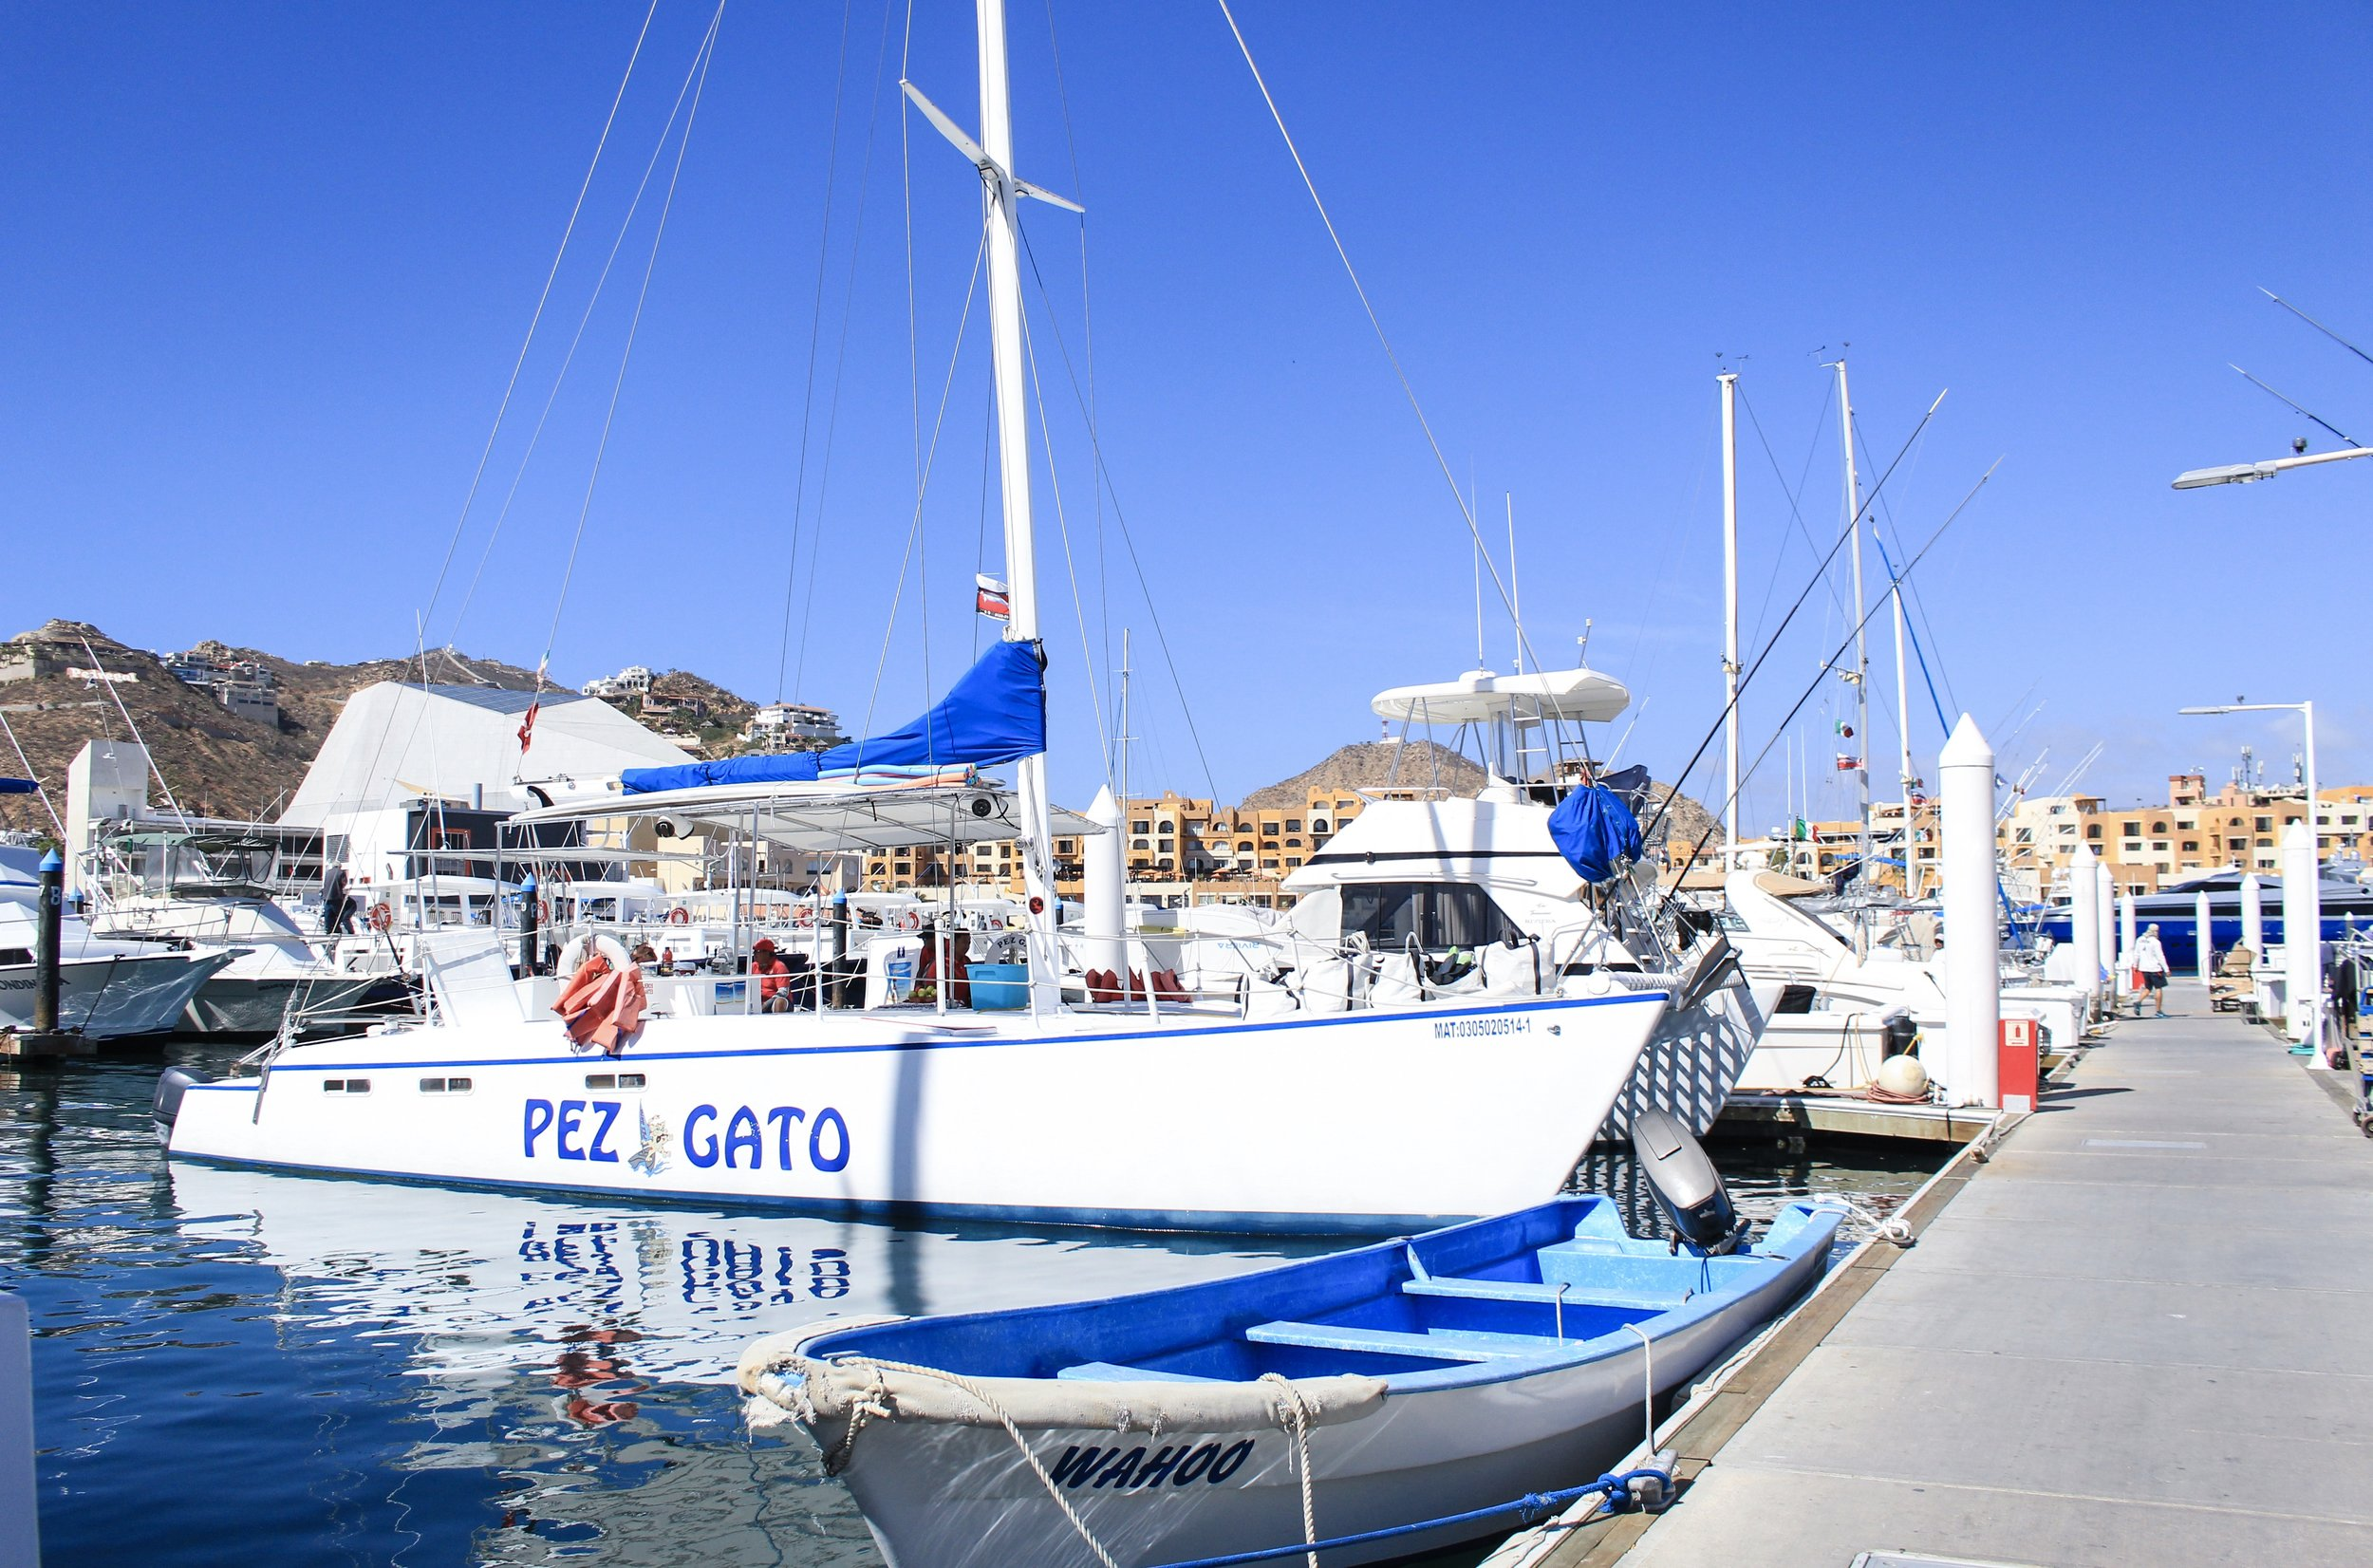 BEAUTIFUL CATAMARAN COURTESY OF pezgato cabO TOURS - los cabos, MEXICO